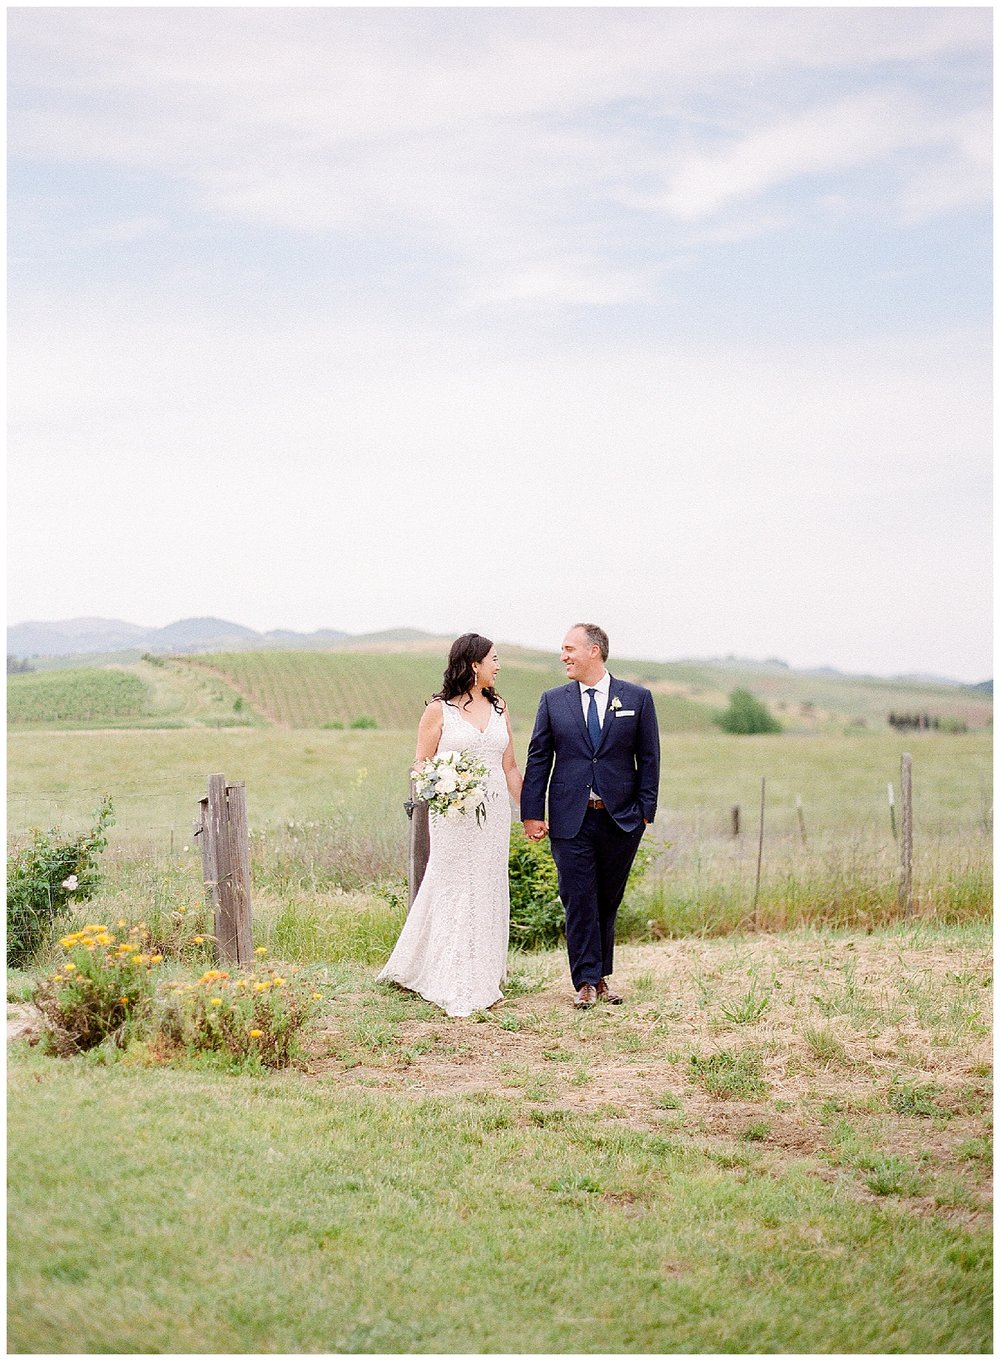 Janine_Licare_Photography_San_Francisco_Wedding_Photographer_Carneros_Tyge_Williams_Sonoma_Napa_0058.jpg